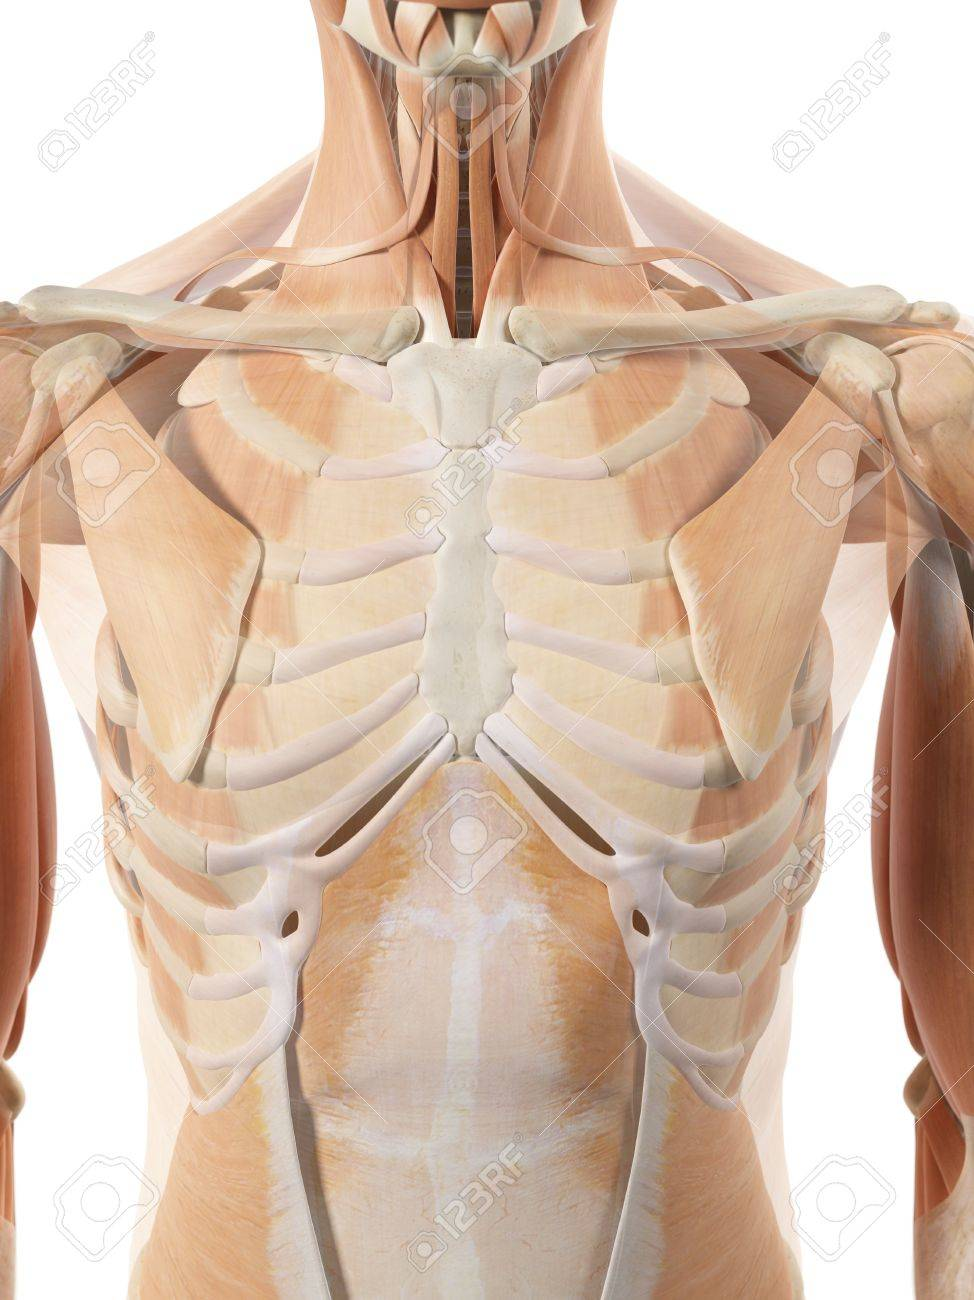 Thoracic Muscles Artwork Stock Photo Picture And Royalty Free